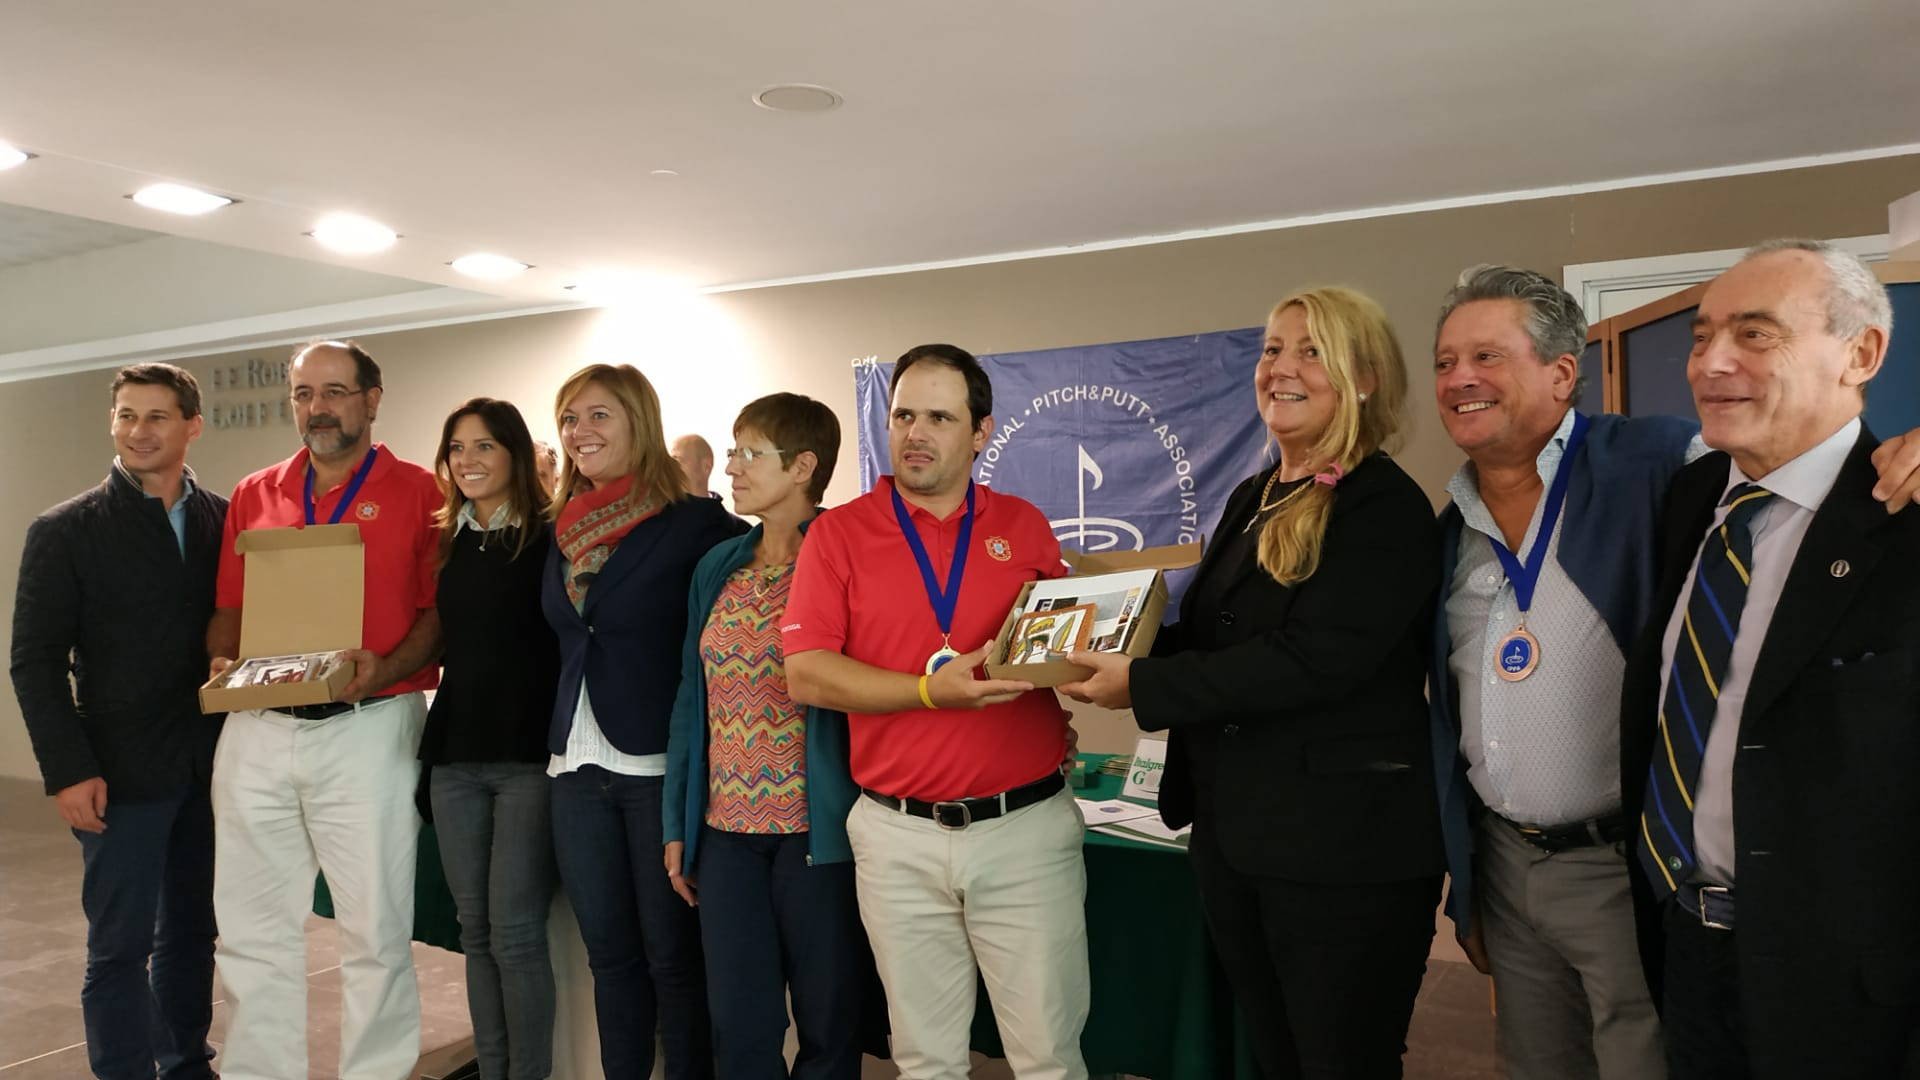 Arnaldo Paredes and Hugo Espirito Santo new 2019 European P&P Pairs Champions